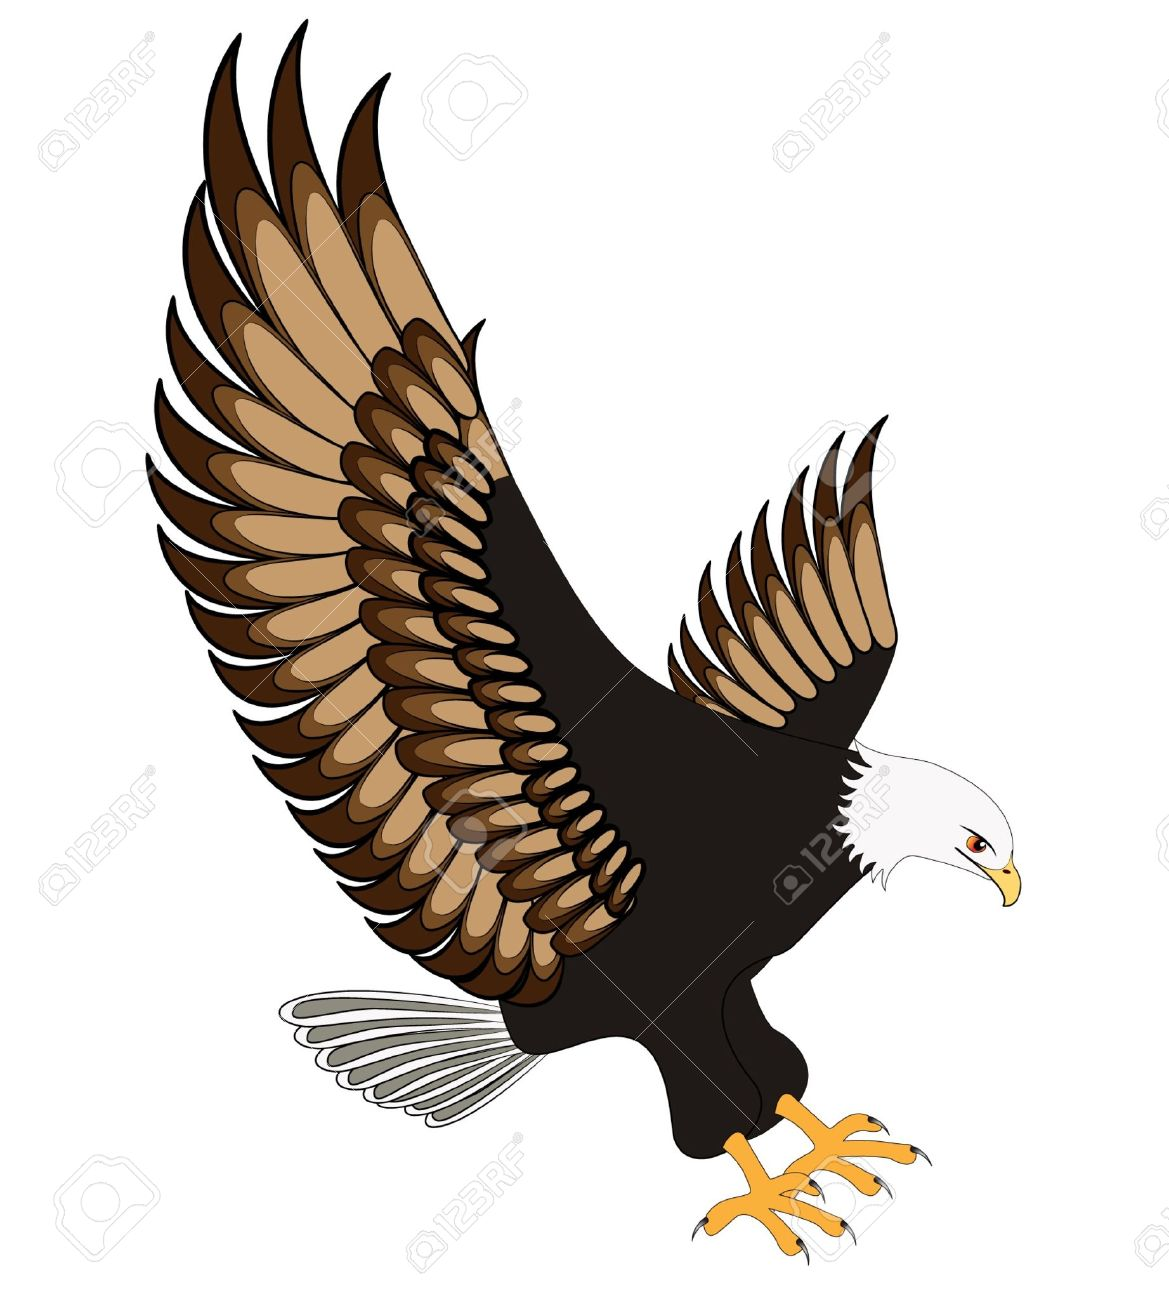 Eagle flying clipart 5 » Clipart Station.